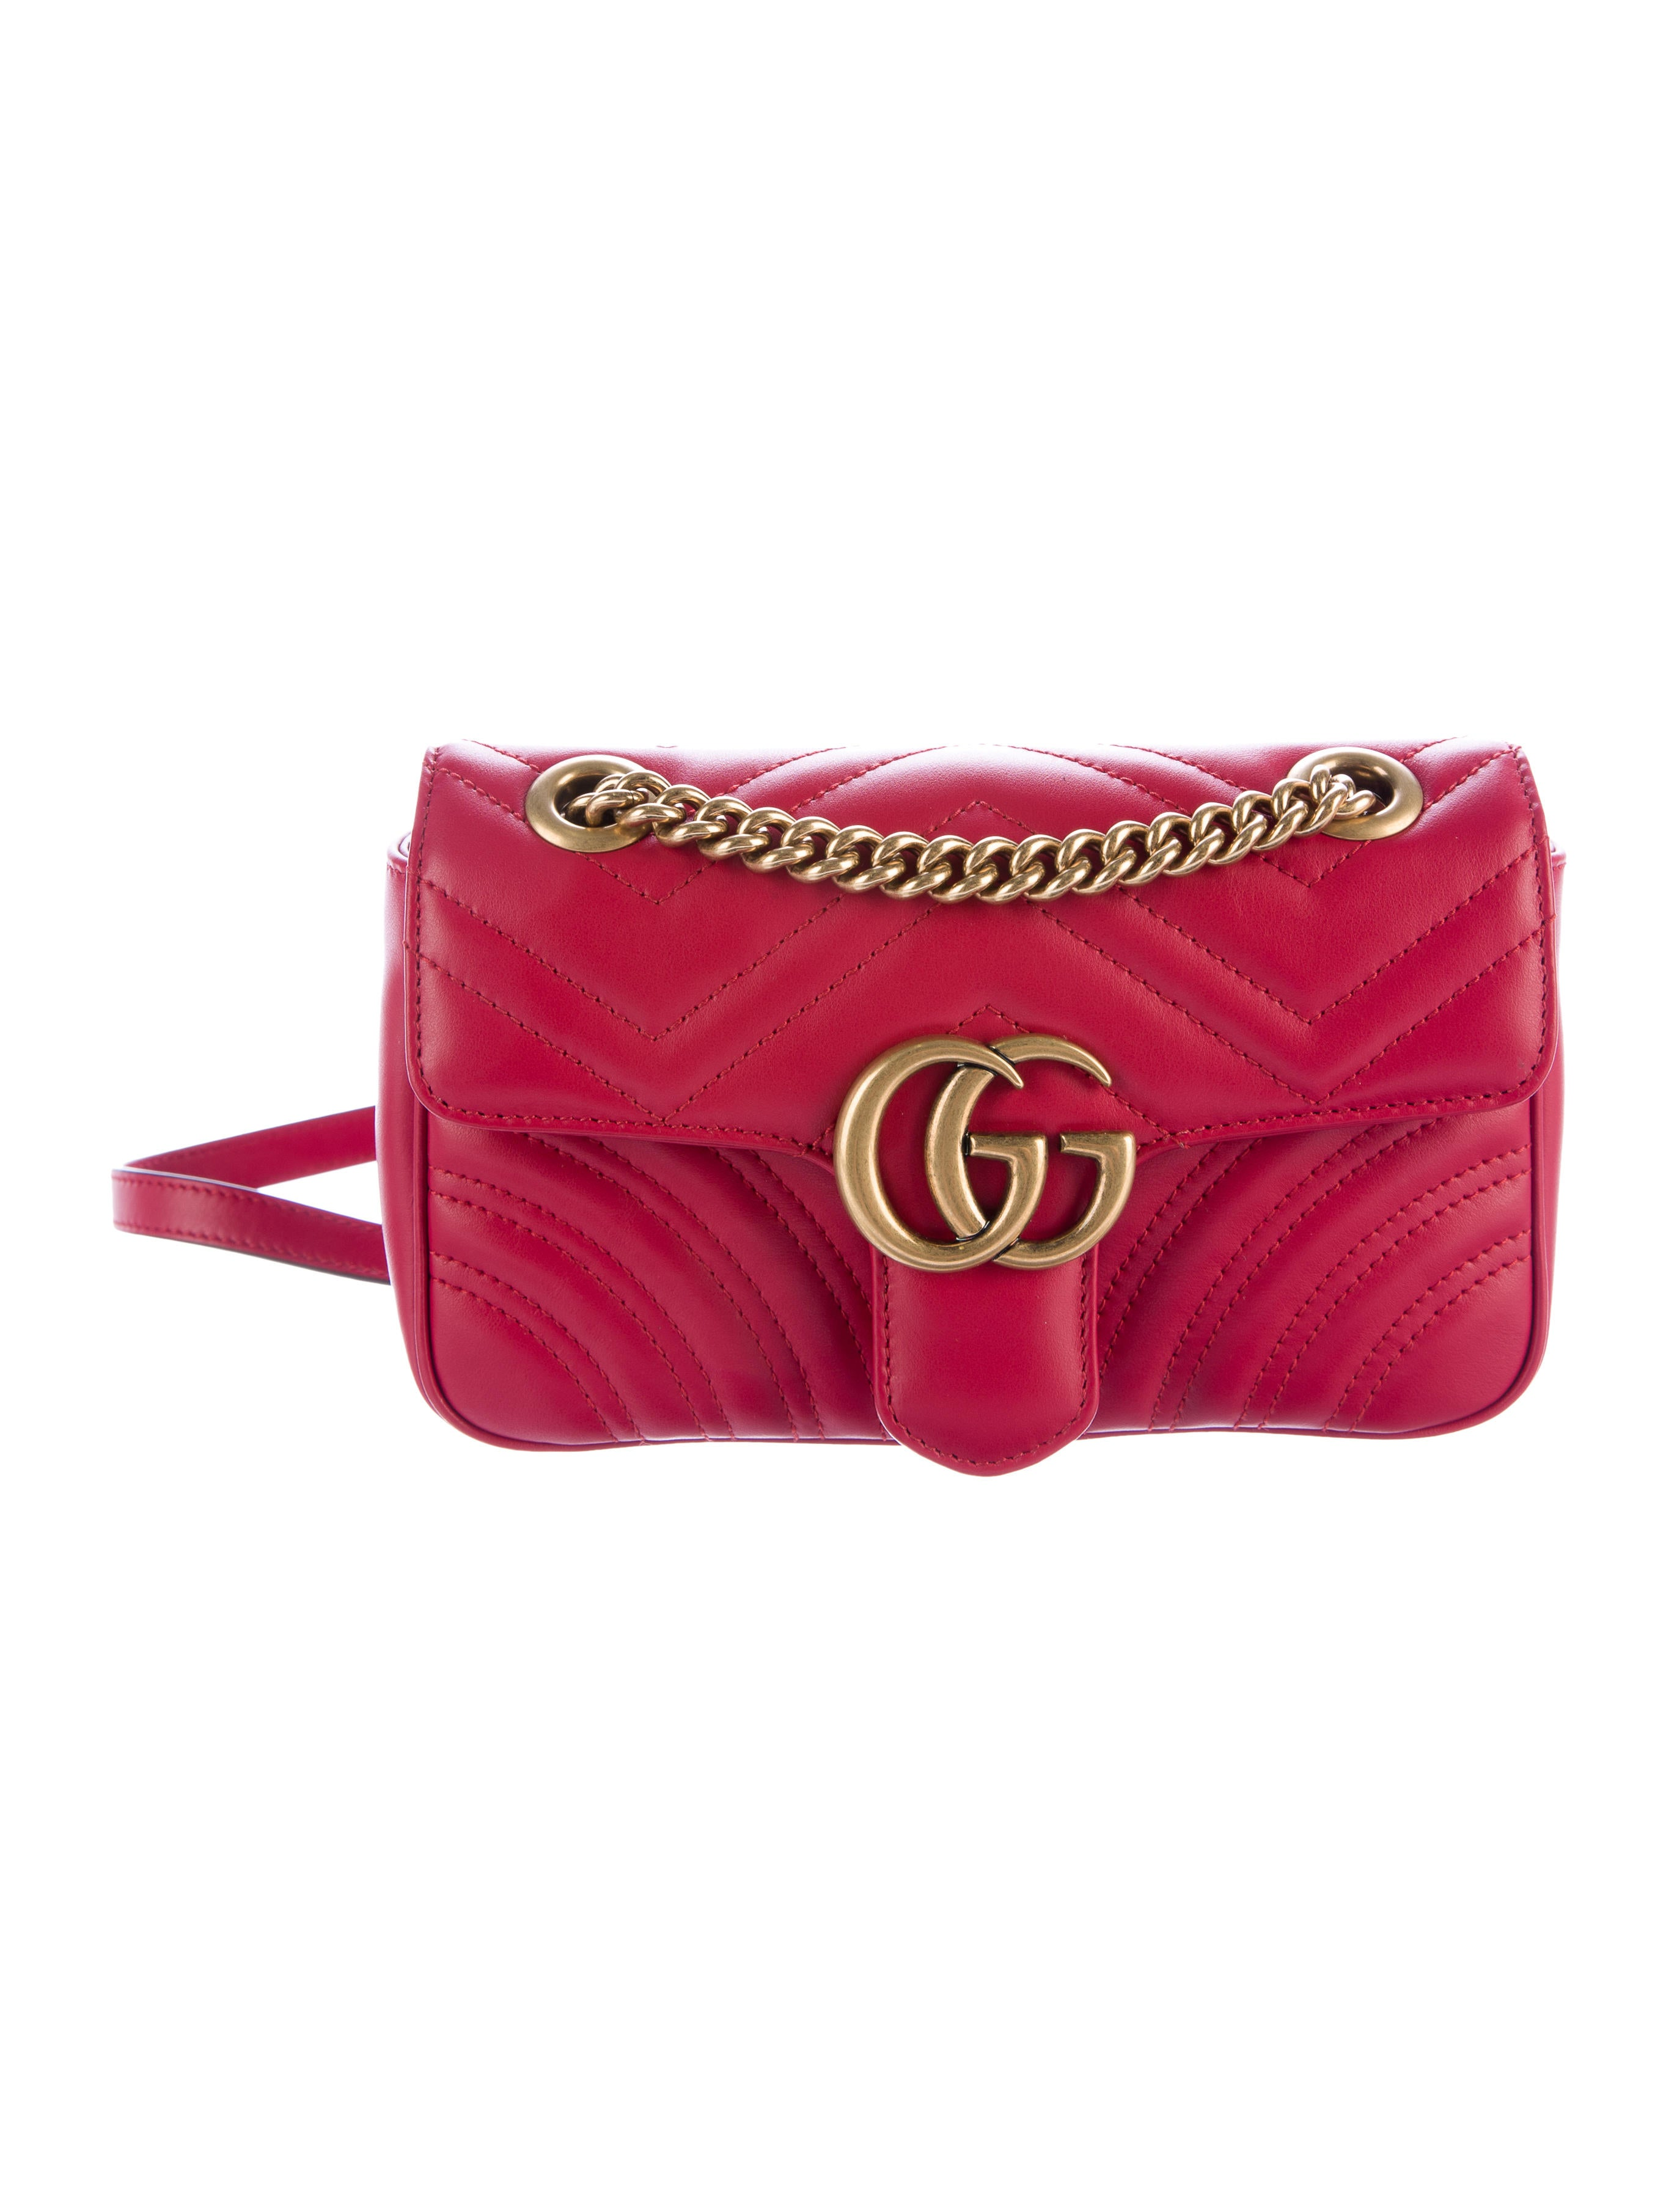 Elegant Gucci Bags Fall Winter 2016 2017 Handbags For Women 53